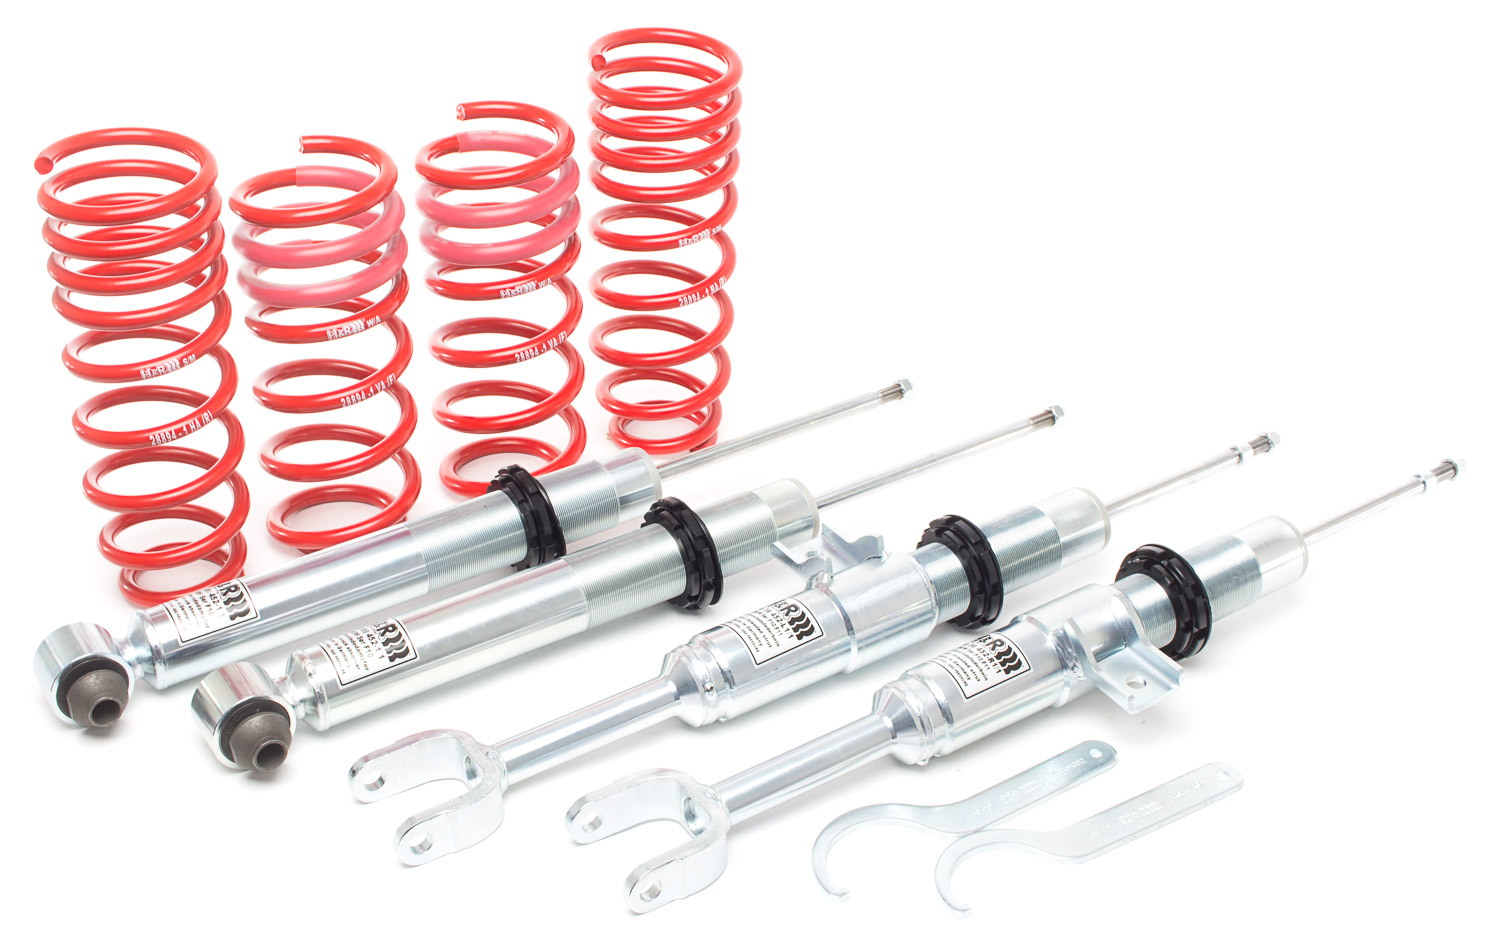 Not M Roadster 6 CYLINDER 29754-2 H+R LOWERING SPRINGS BMW Z3 E36